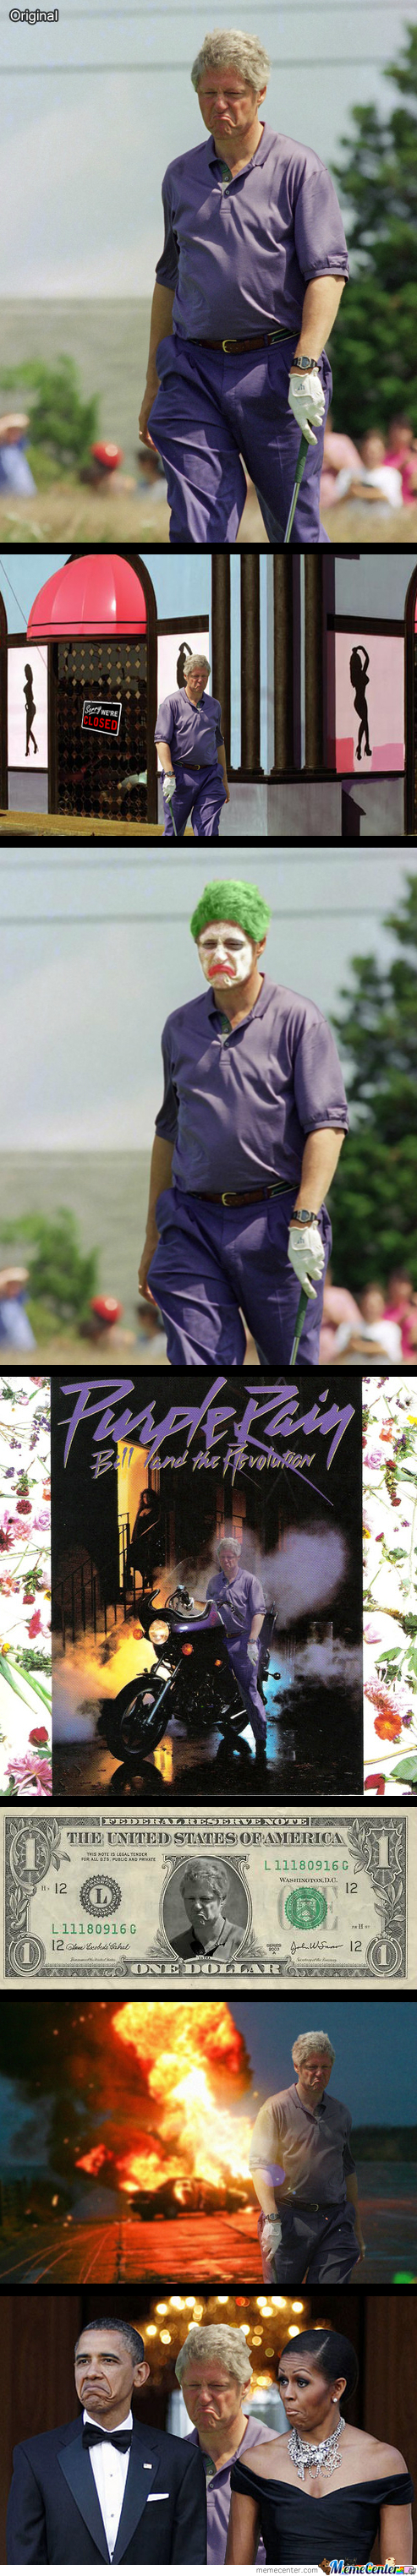 Displeased Purple Bill Clinton